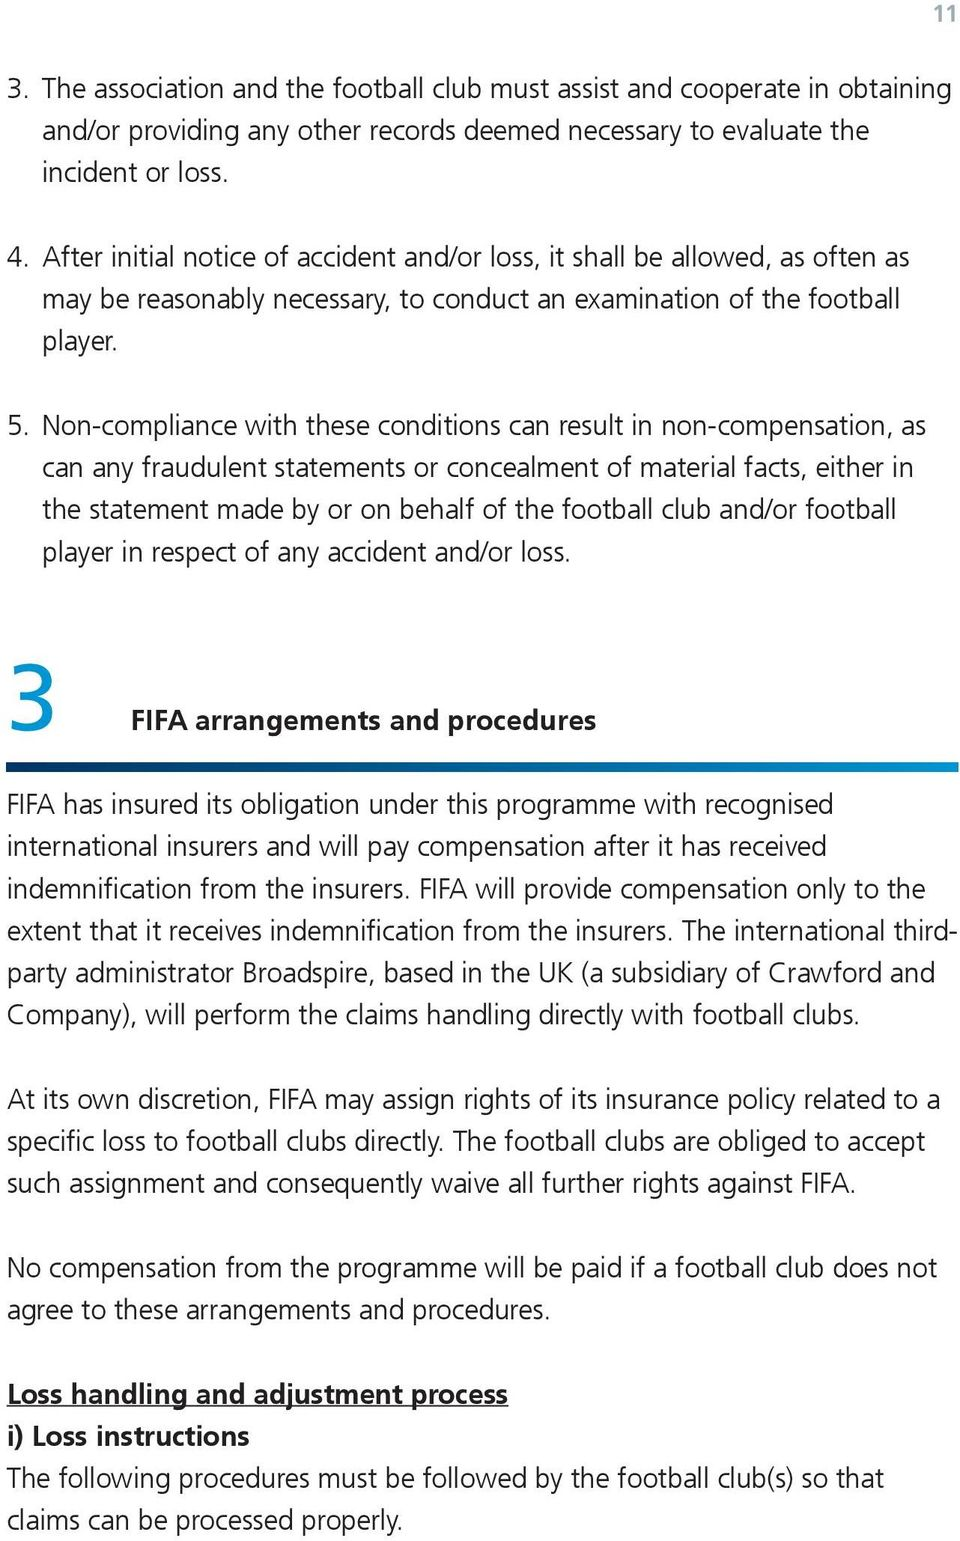 Non-compliance with se conditions can result in non-compensation, as can any fraudulent statements or concealment material facts, eir in statement made by or on behalf football club /or football